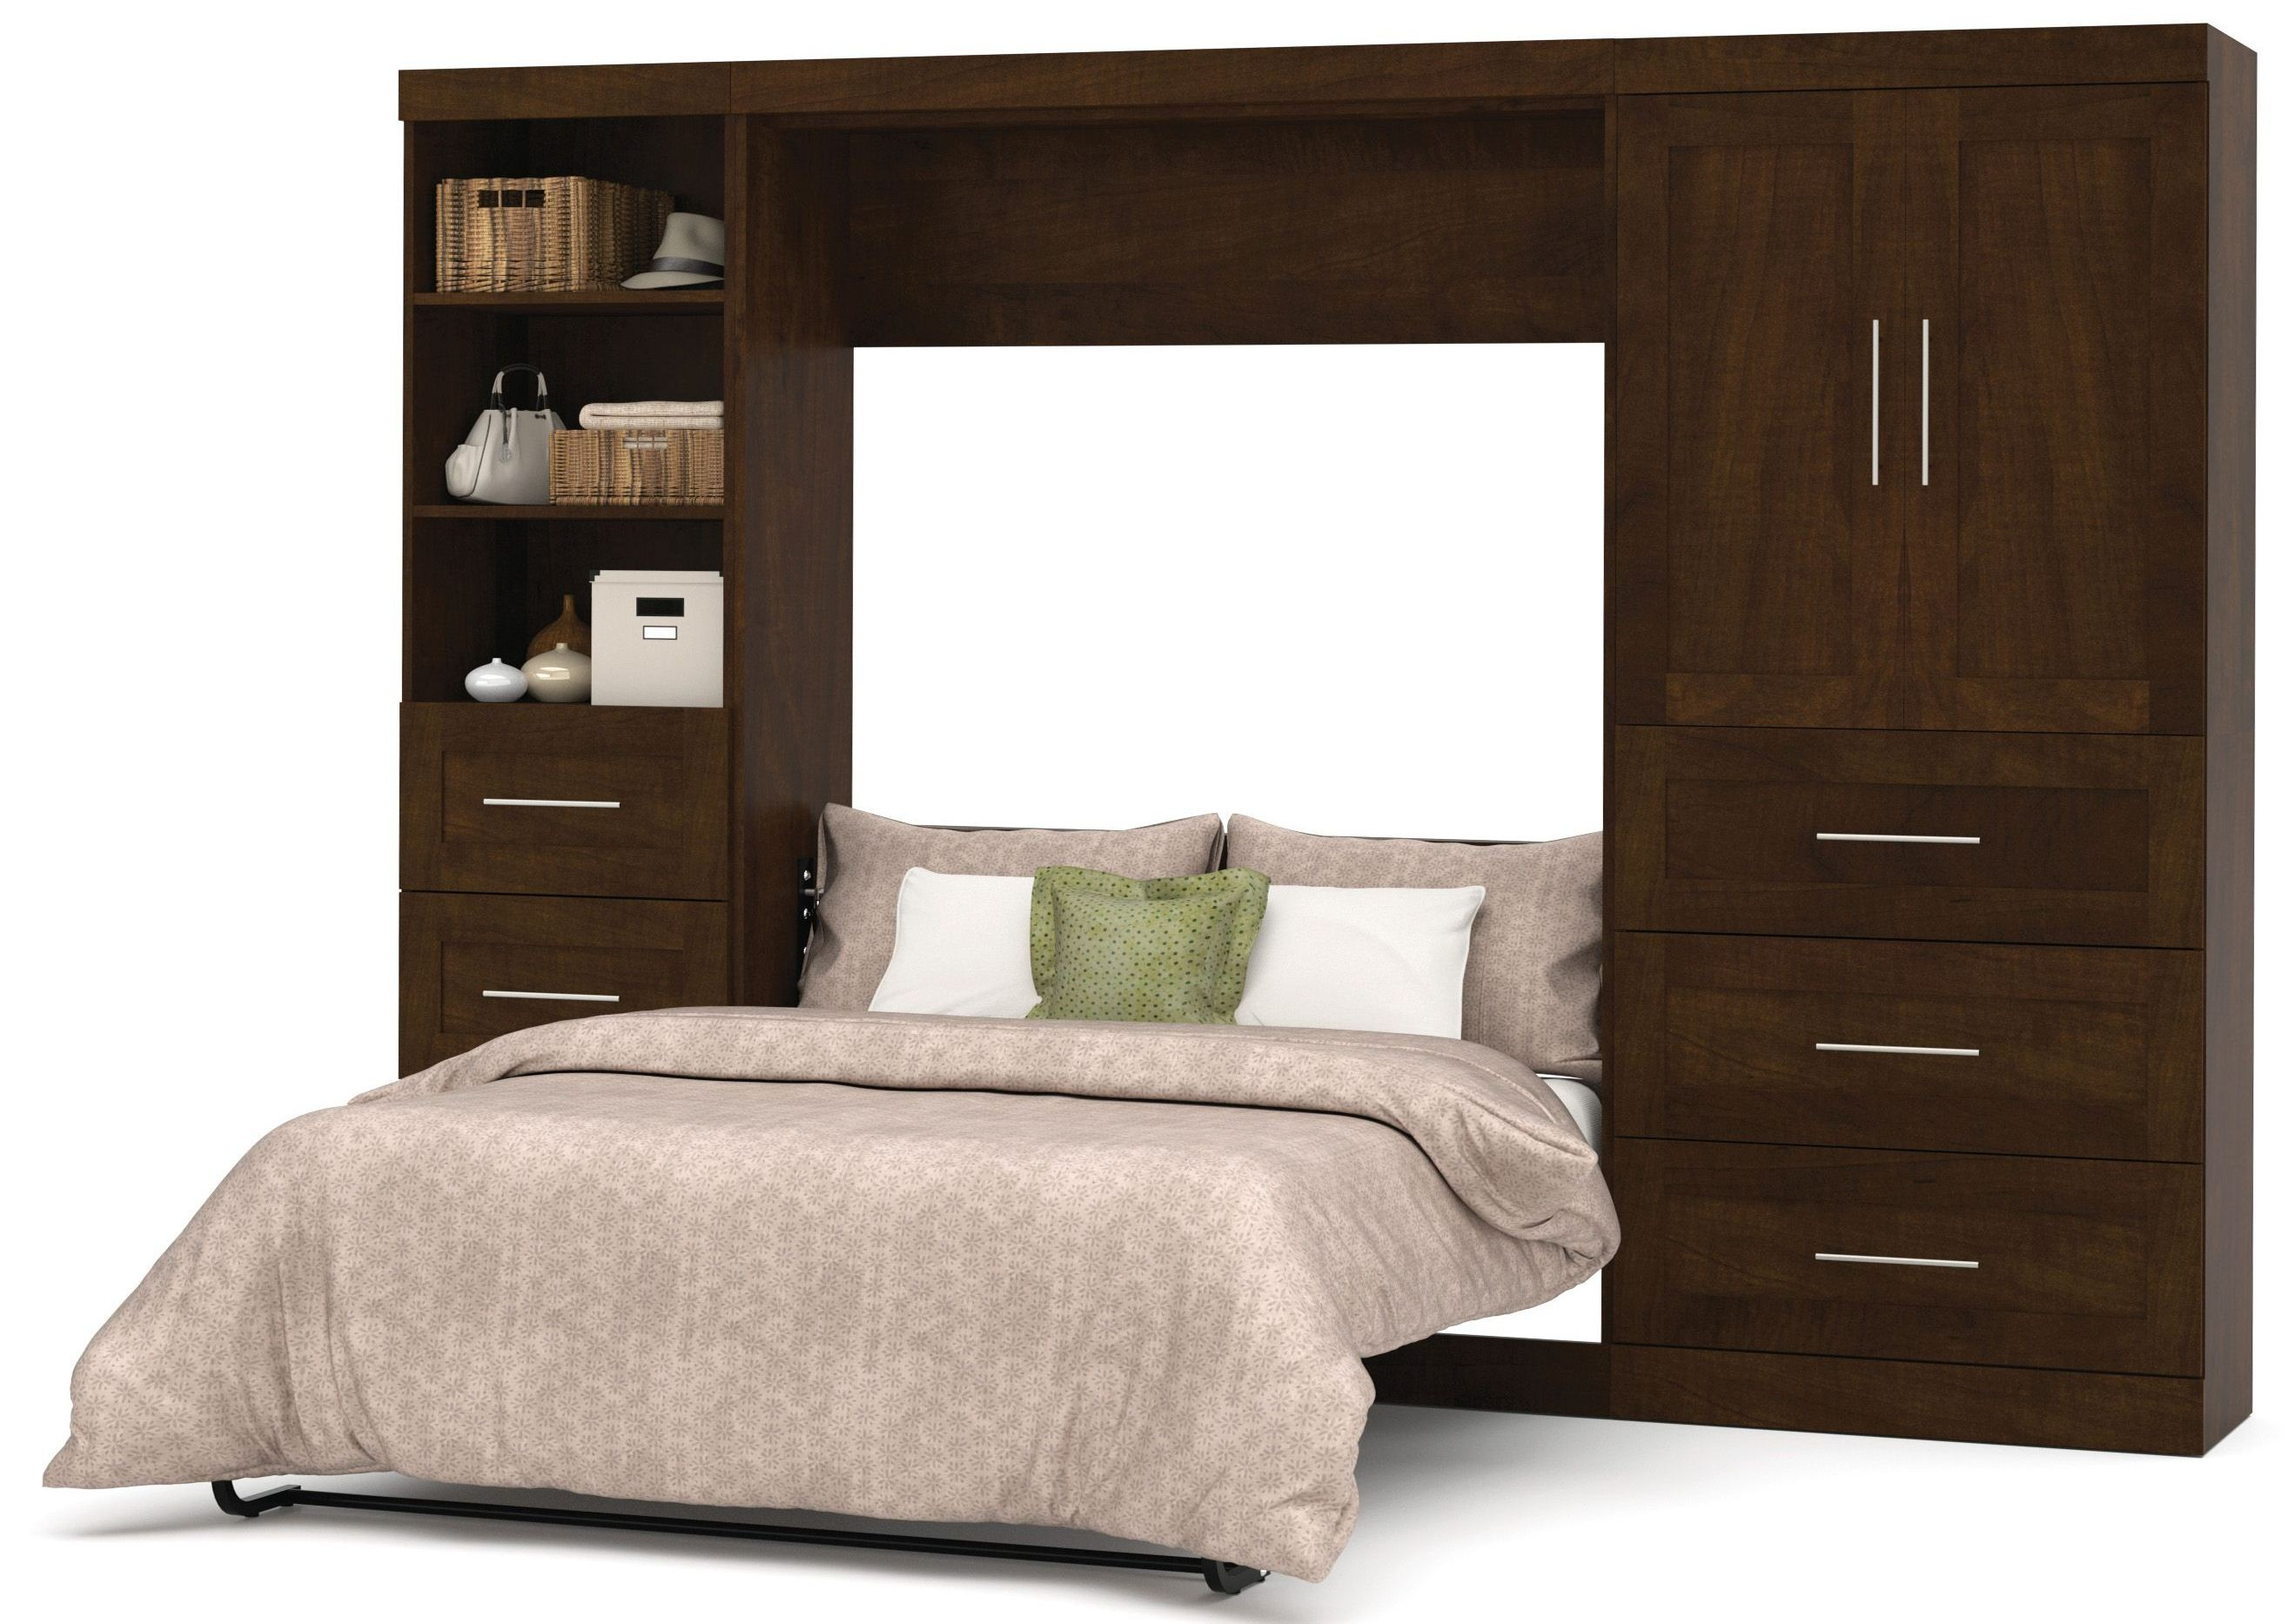 Pur Chocolate 120 Quot Door Full Wall Bed From Bestar 26899